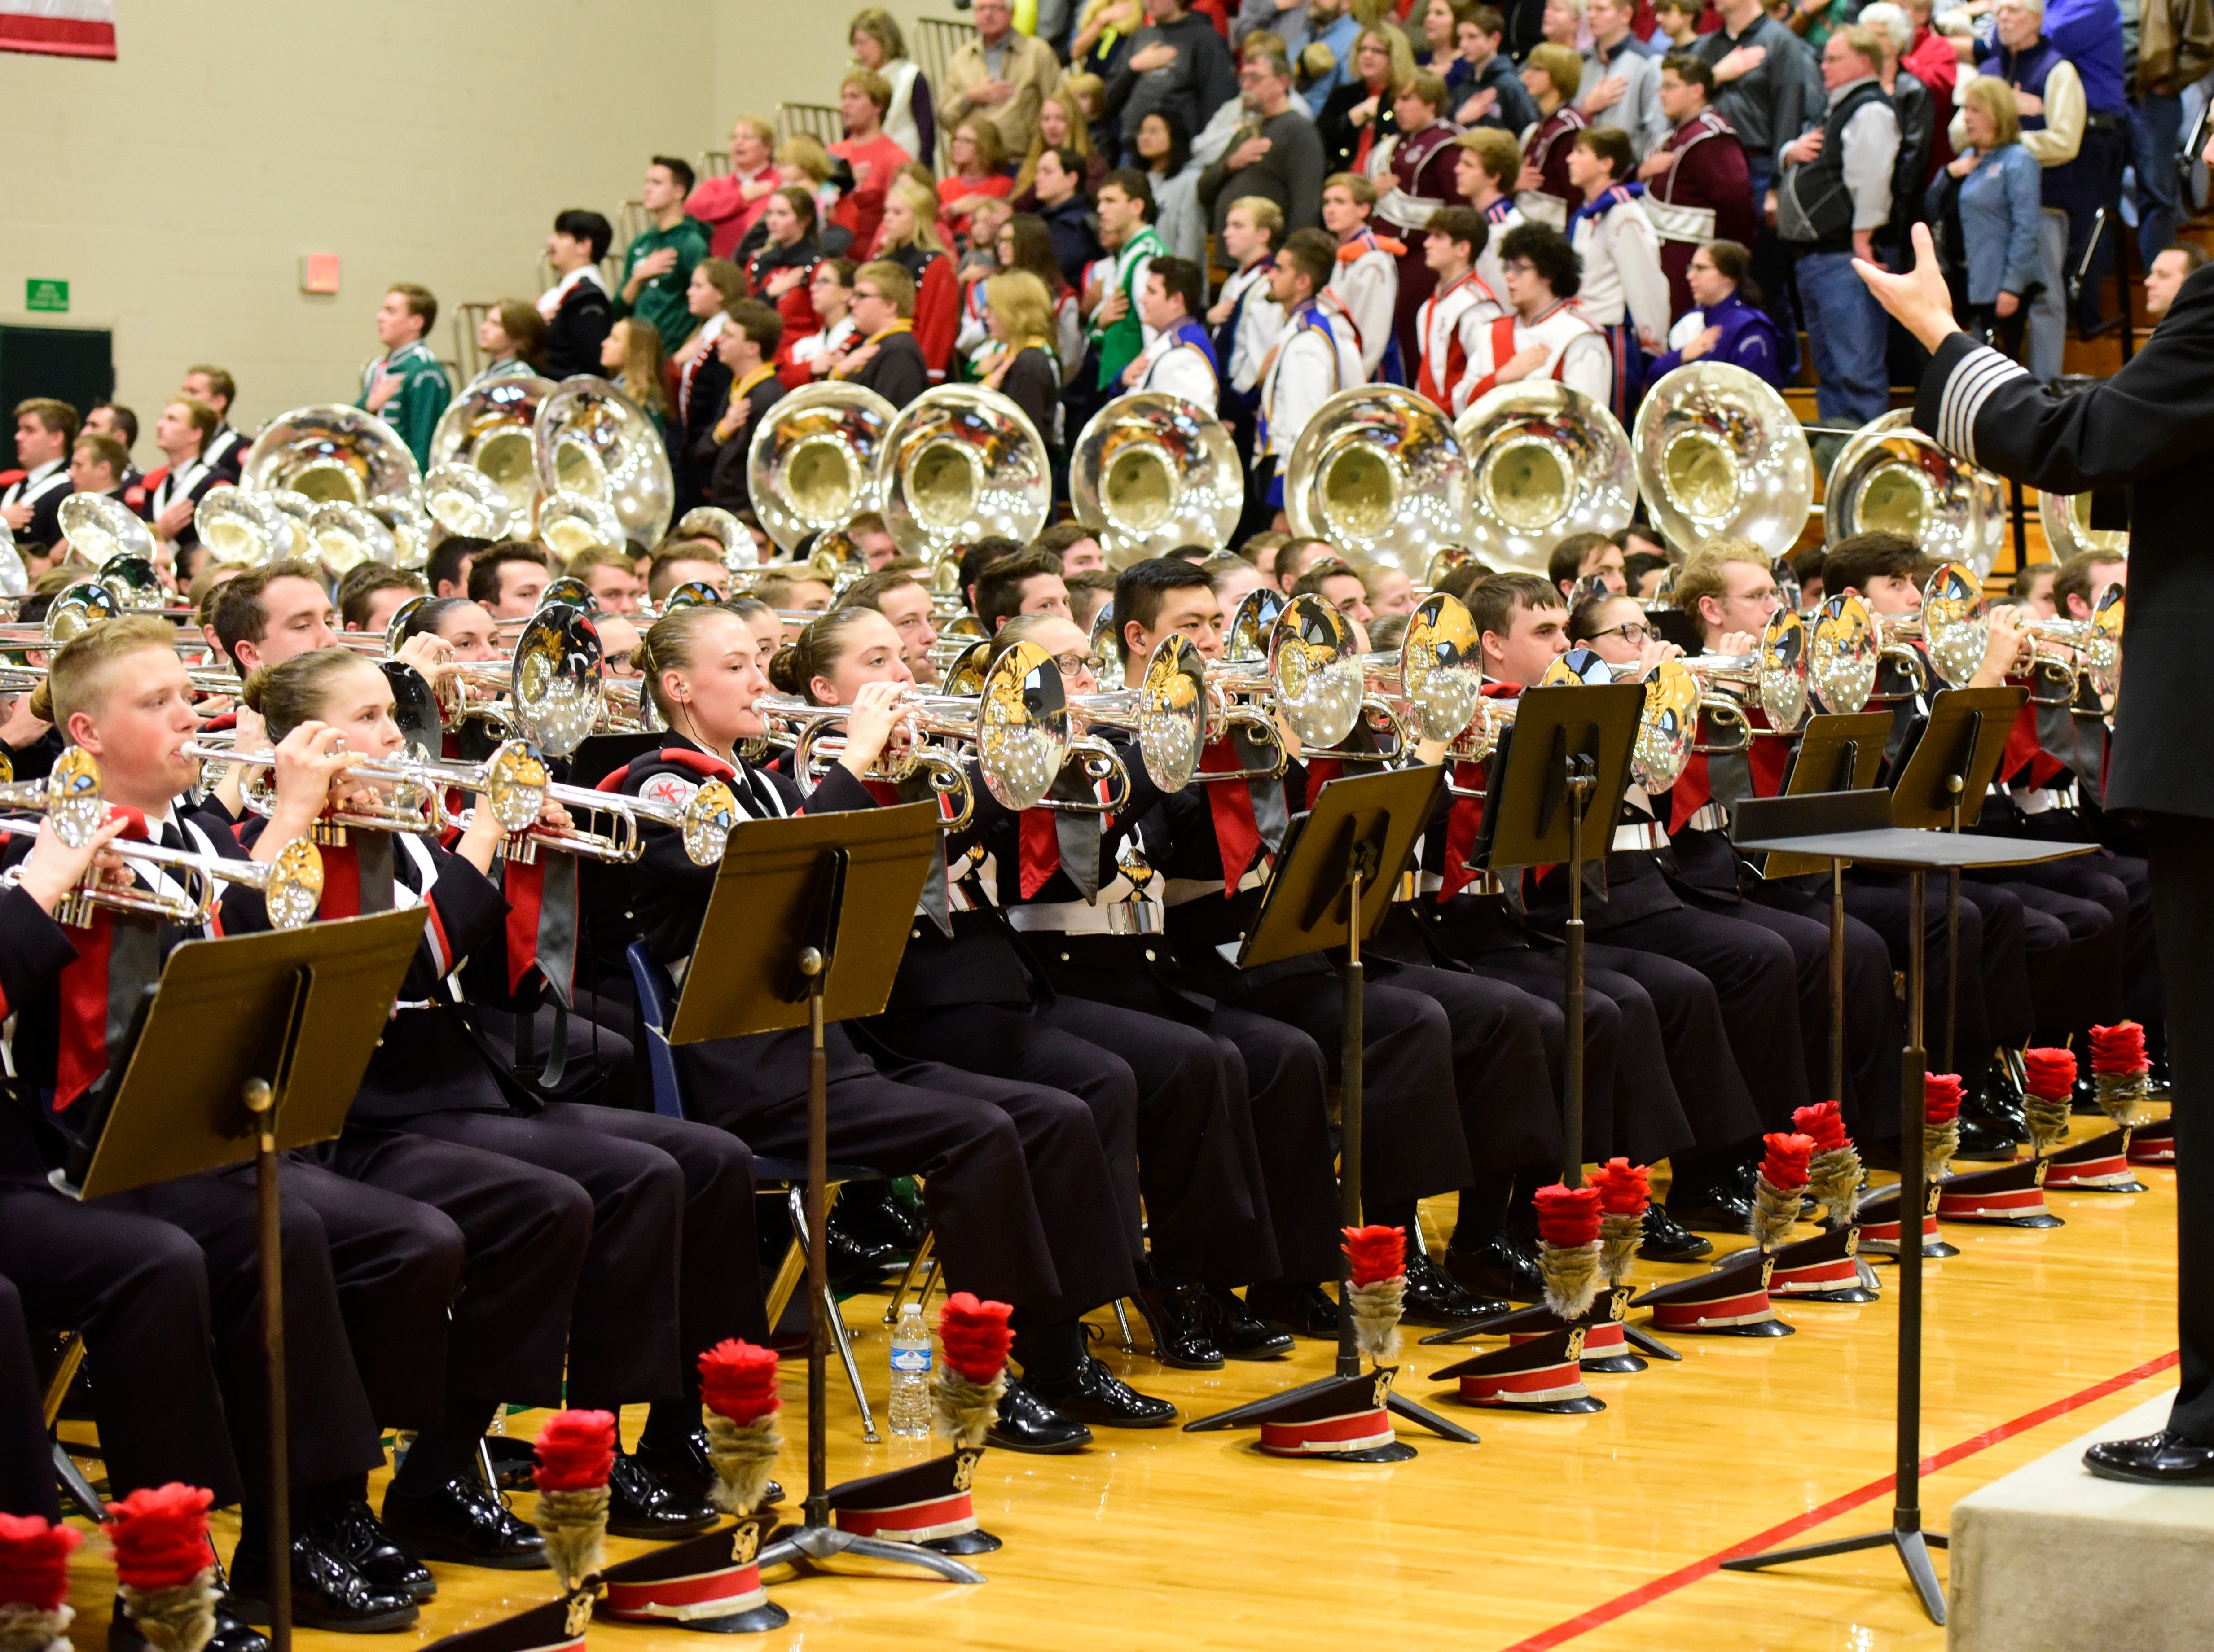 The OSU Marching Band performs at Oak Harbor High School on Friday night.